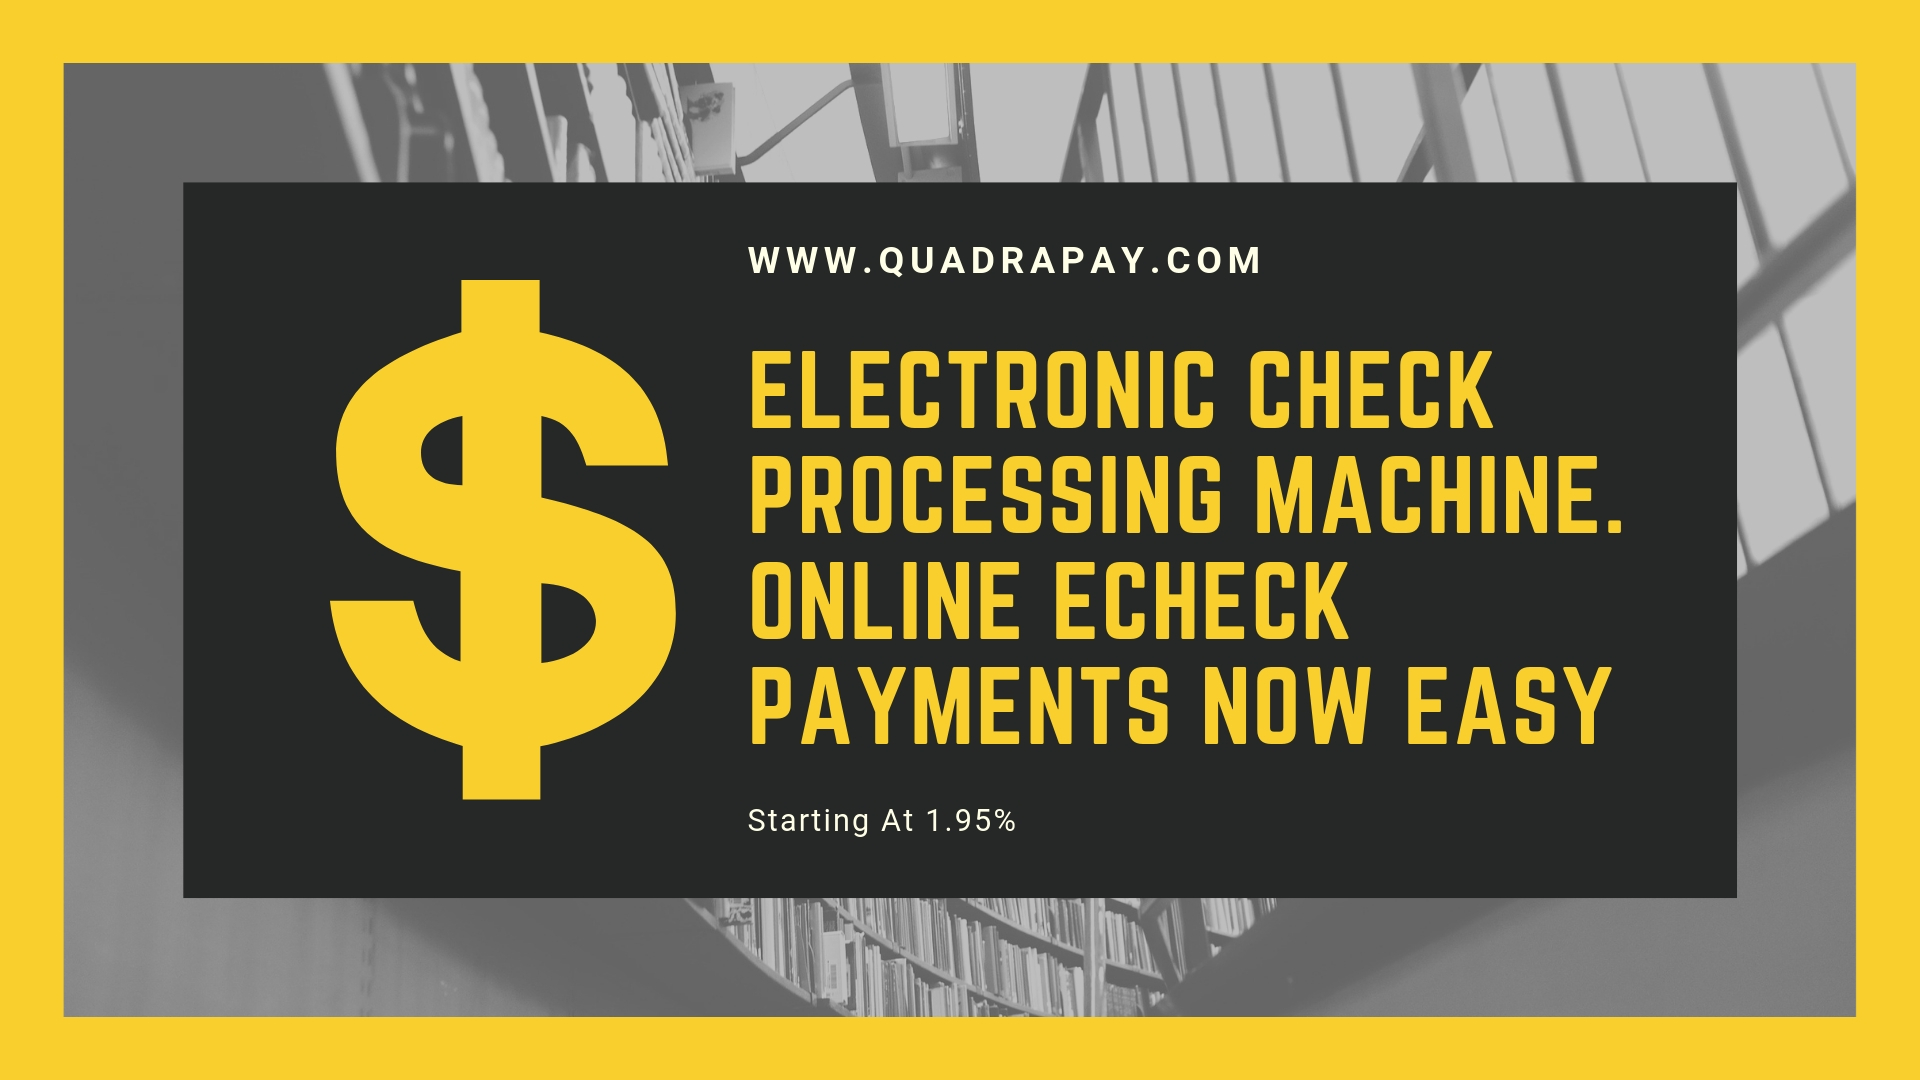 ELECTRONIC CHECK PROCESSING MACHINE